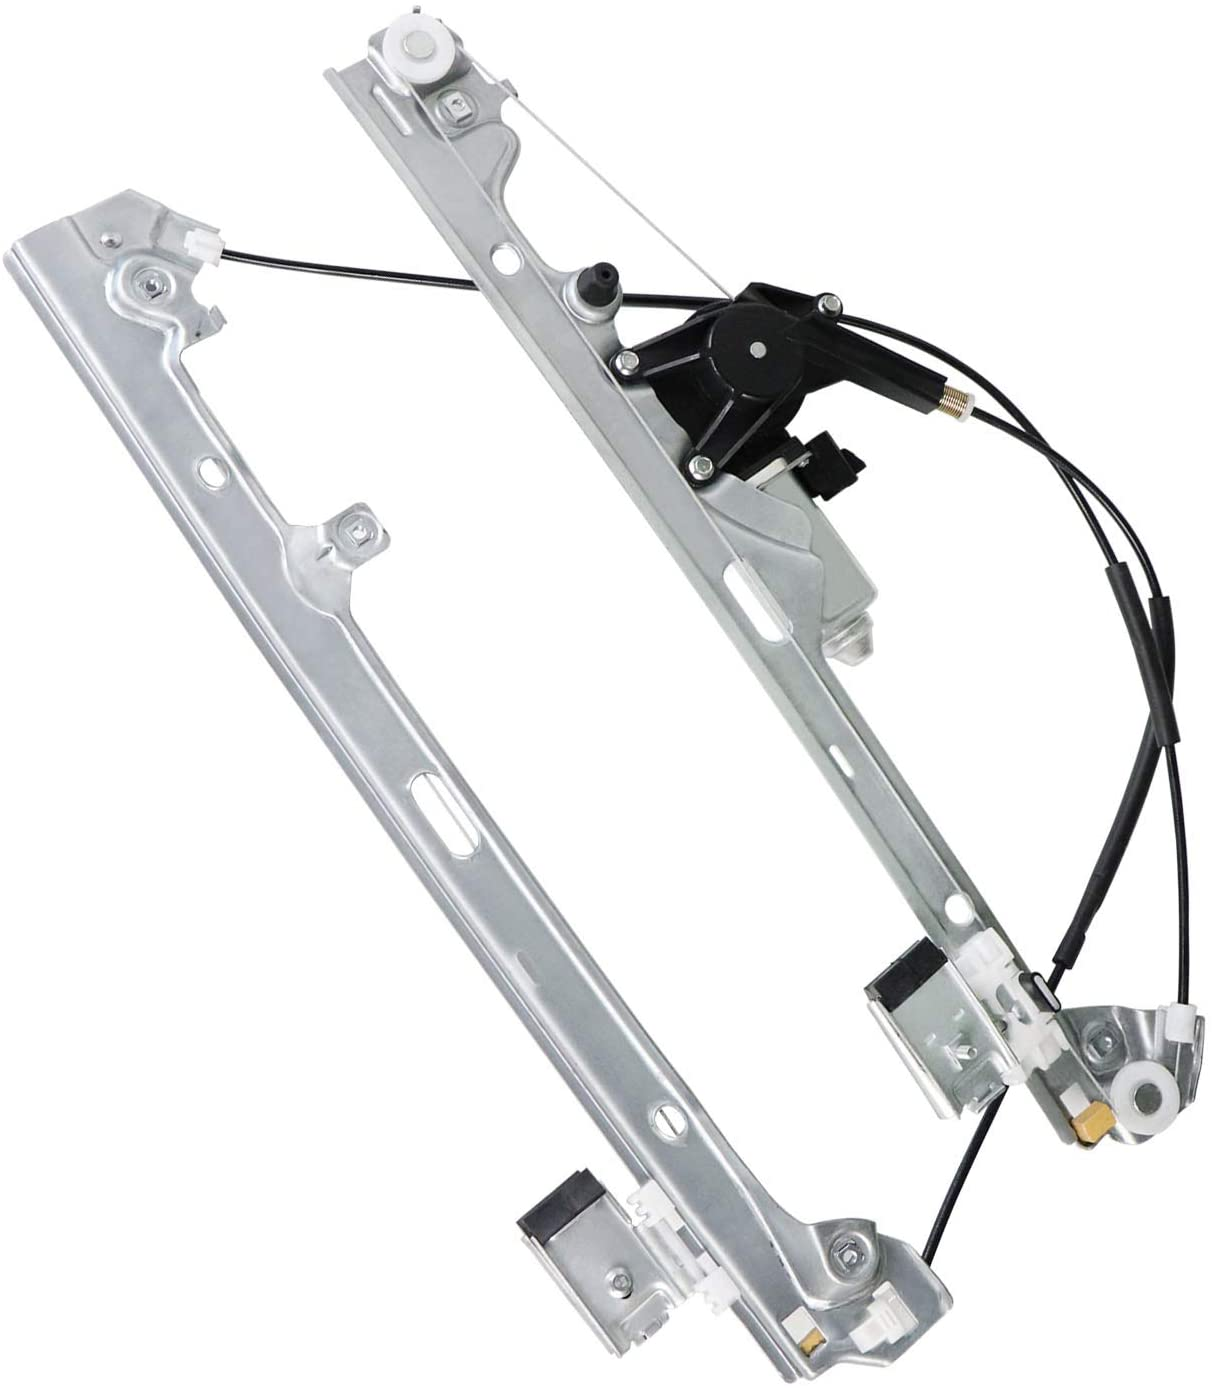 Window Regulator Motor for 2002-2006 Cadillac Escalade, Avalanche/Suburban 1500 2500, 2001-06 Silverado/GMC Sierra/Yukon XL 1500 2500 3500 HD Front Passenger Right Side 741-645